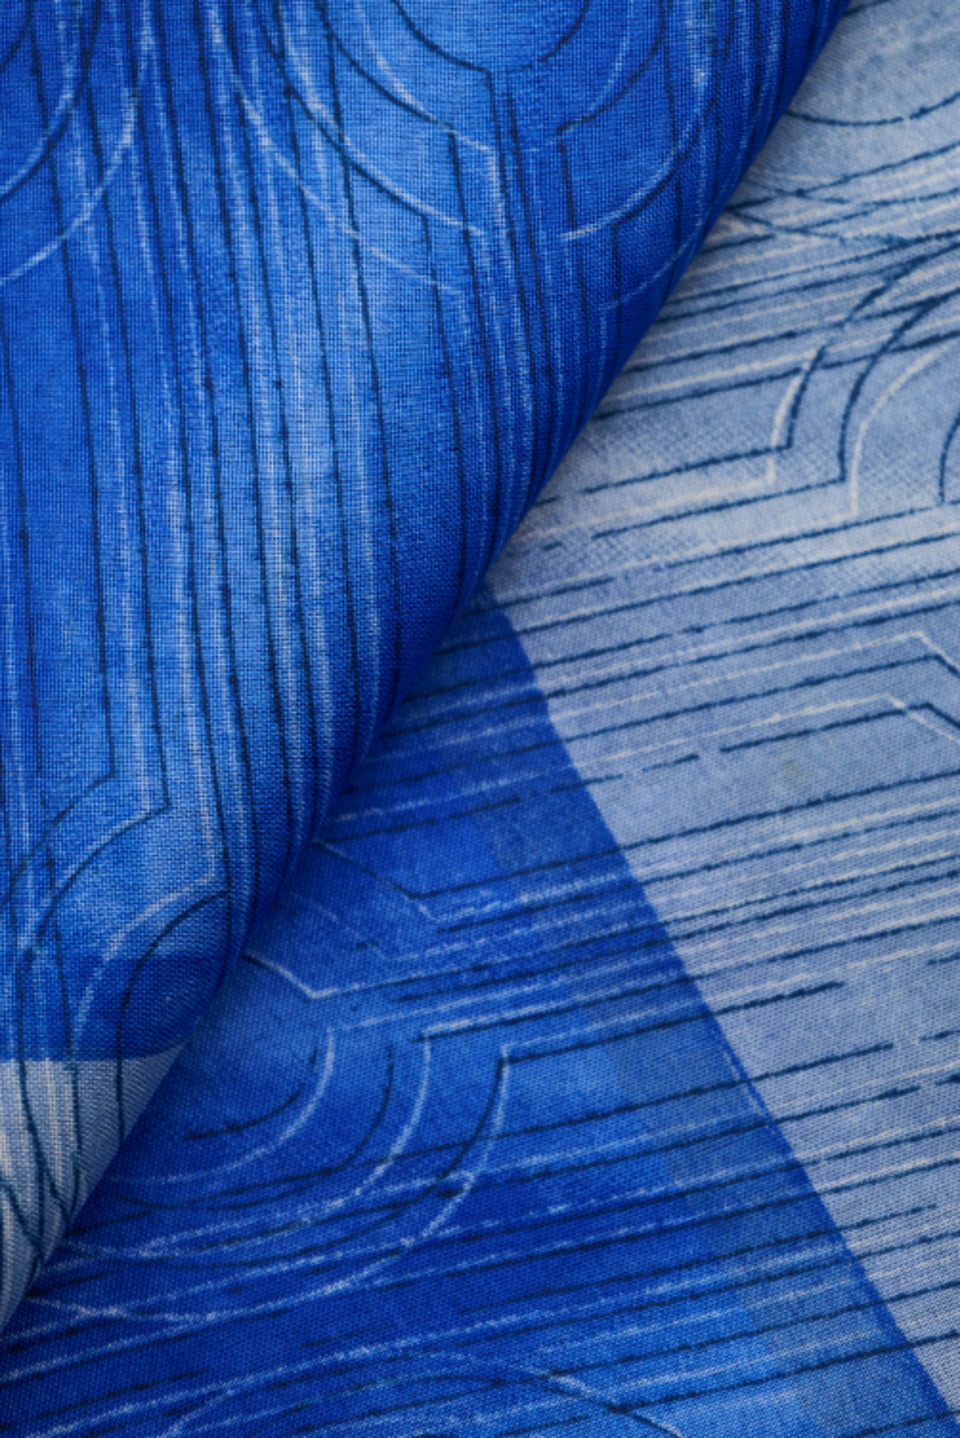 sari scarf fabric texture pattern design sewing crafts materials colorful flat lay fold cloth textile silk blue